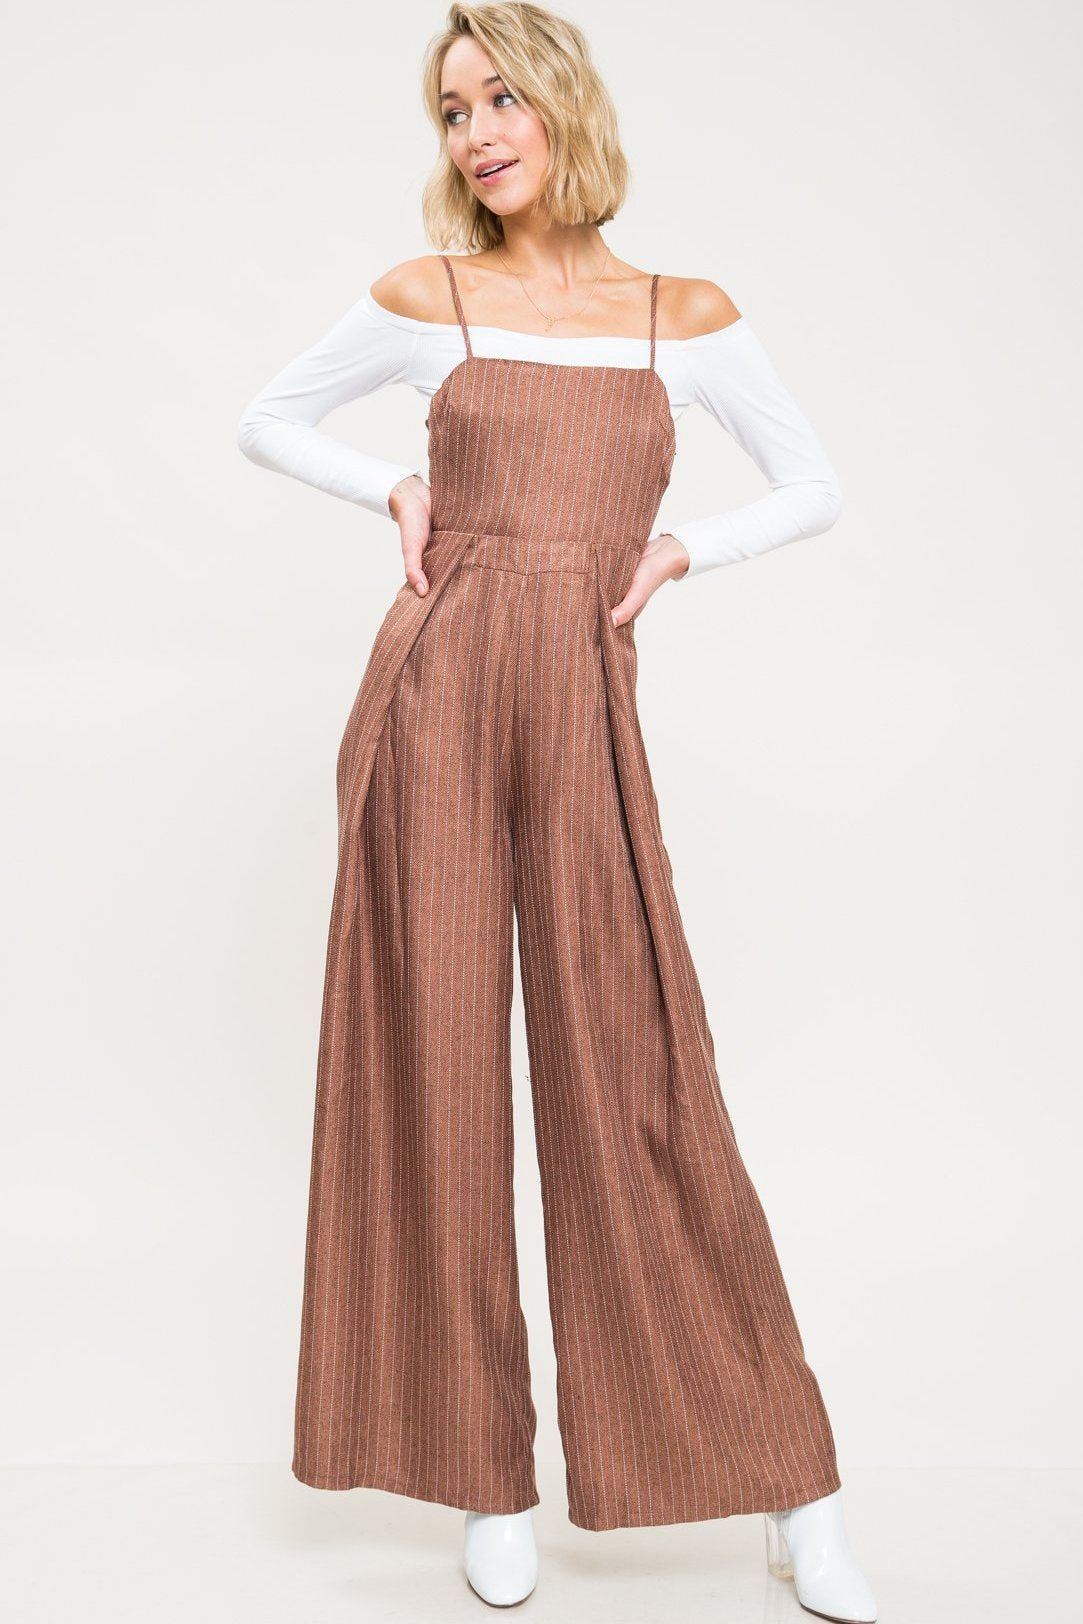 My Feeling Tie Back Jumpsuit - Geegeebae